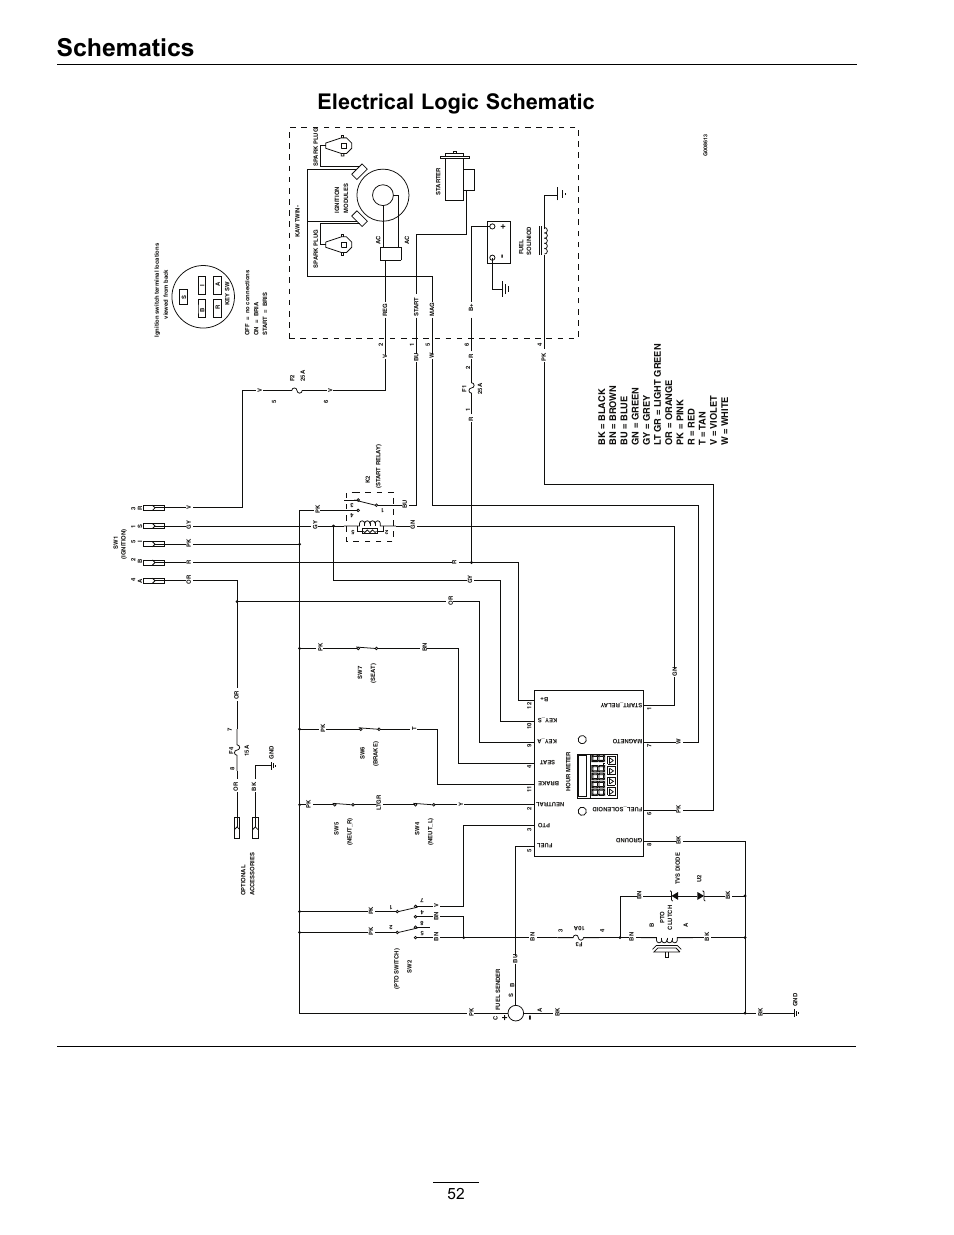 Schematics, Electrical logic schematic | Exmark Lazer Z Advantage Series  Models 0 User Manual |